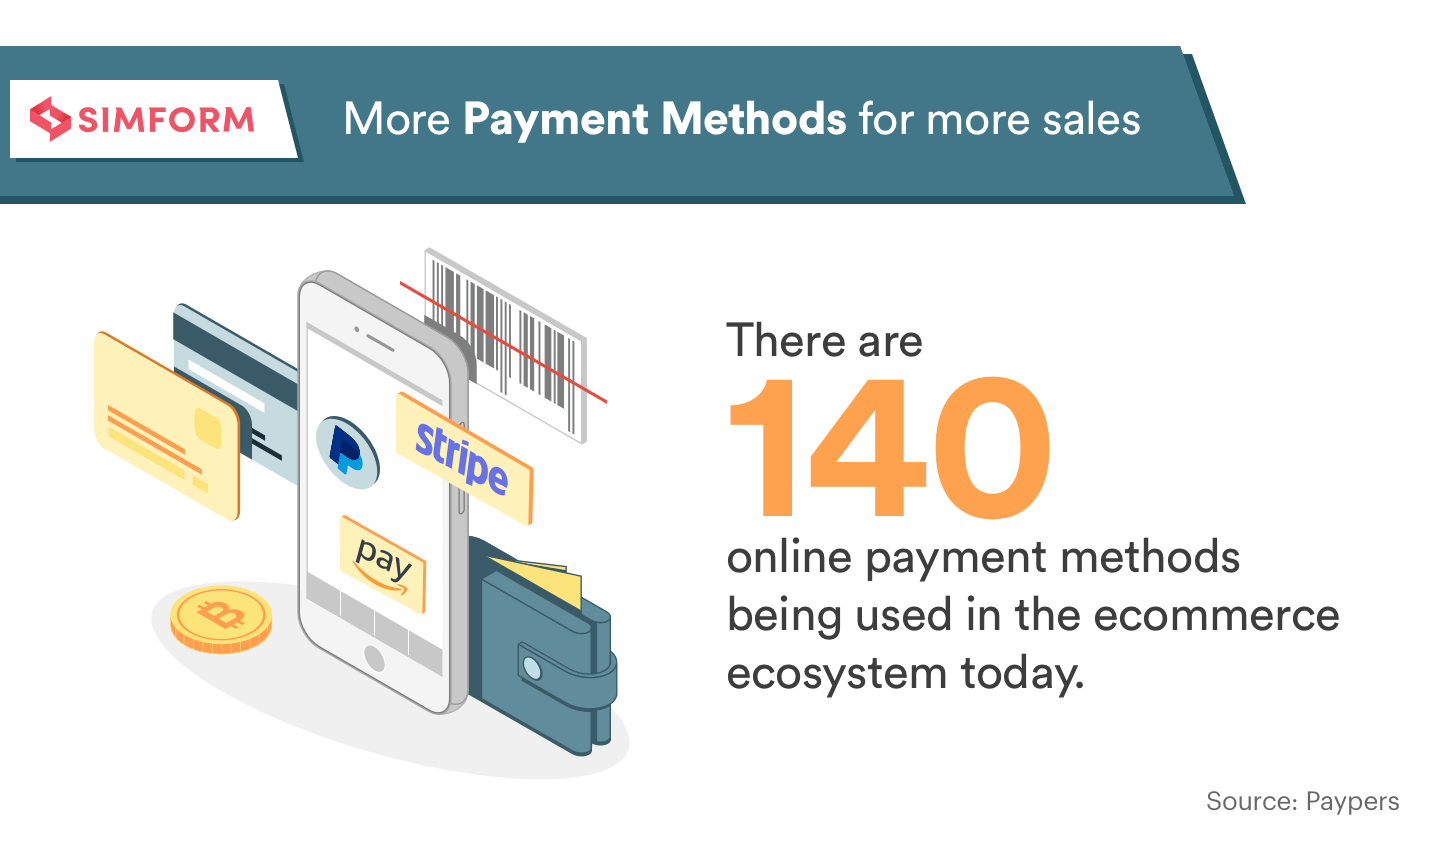 More payment methods reduce cart abandonment